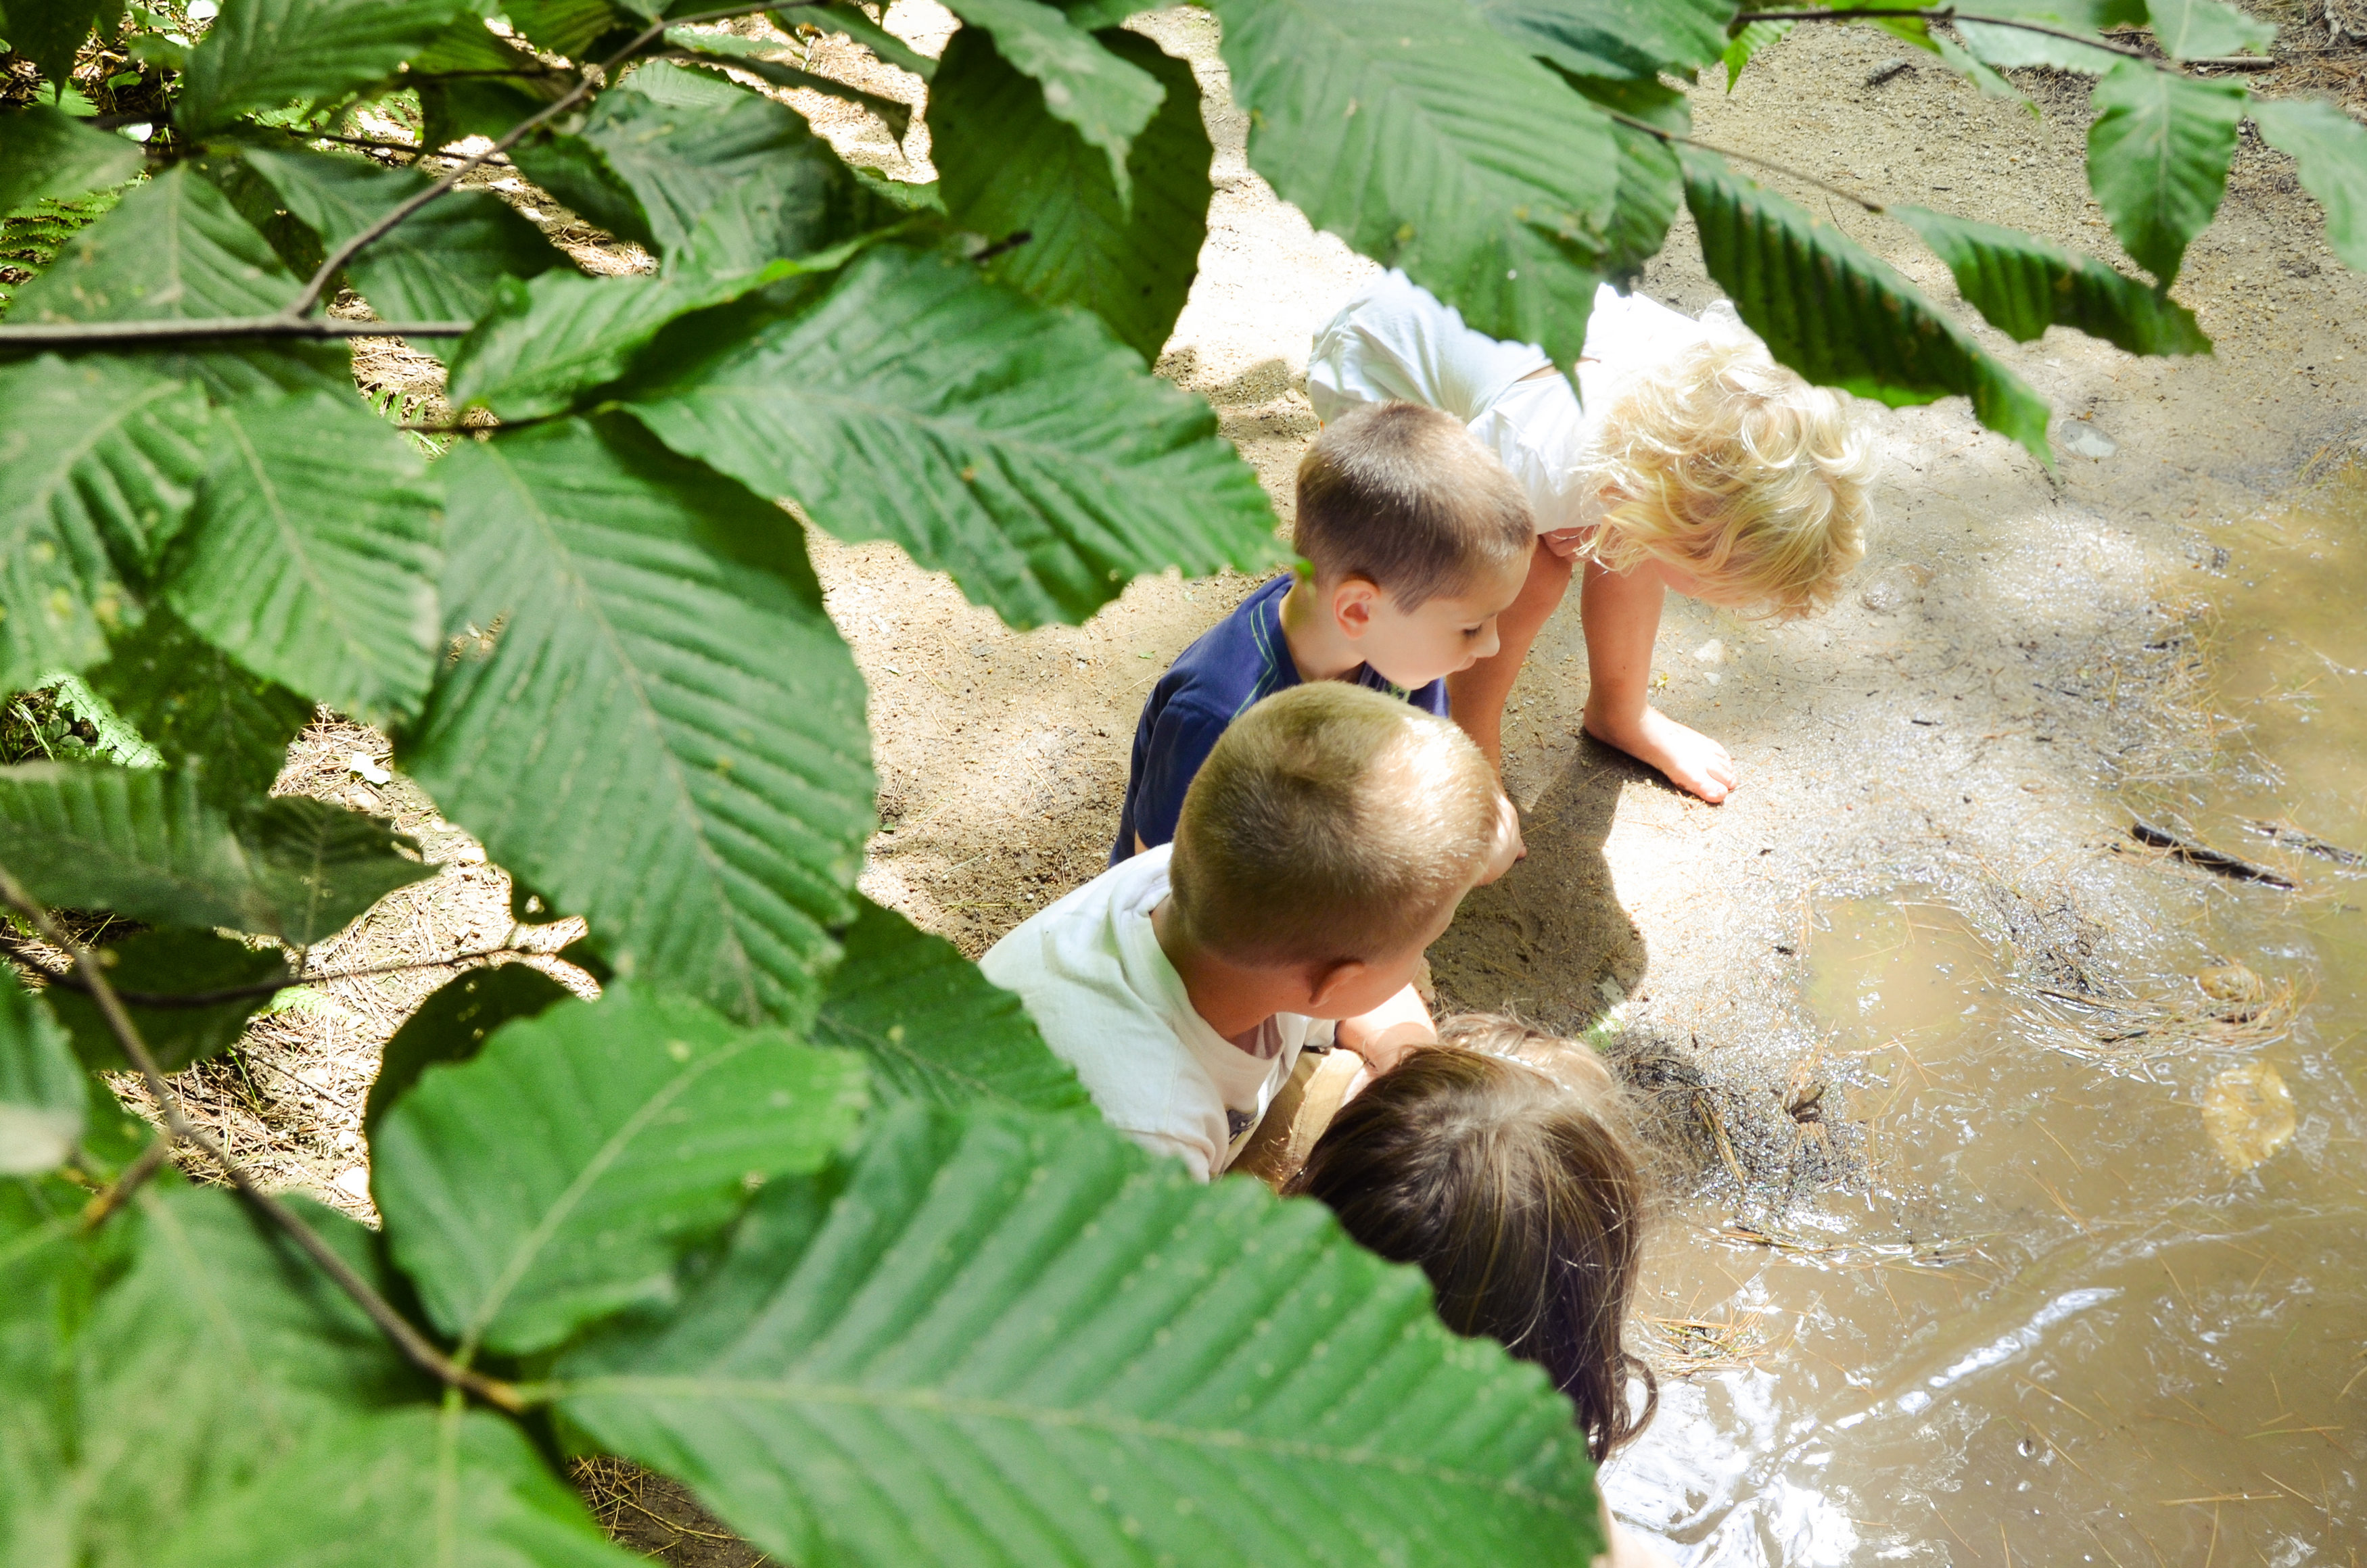 Little Wild Ones - TimberNook of Greater Portland, Maine